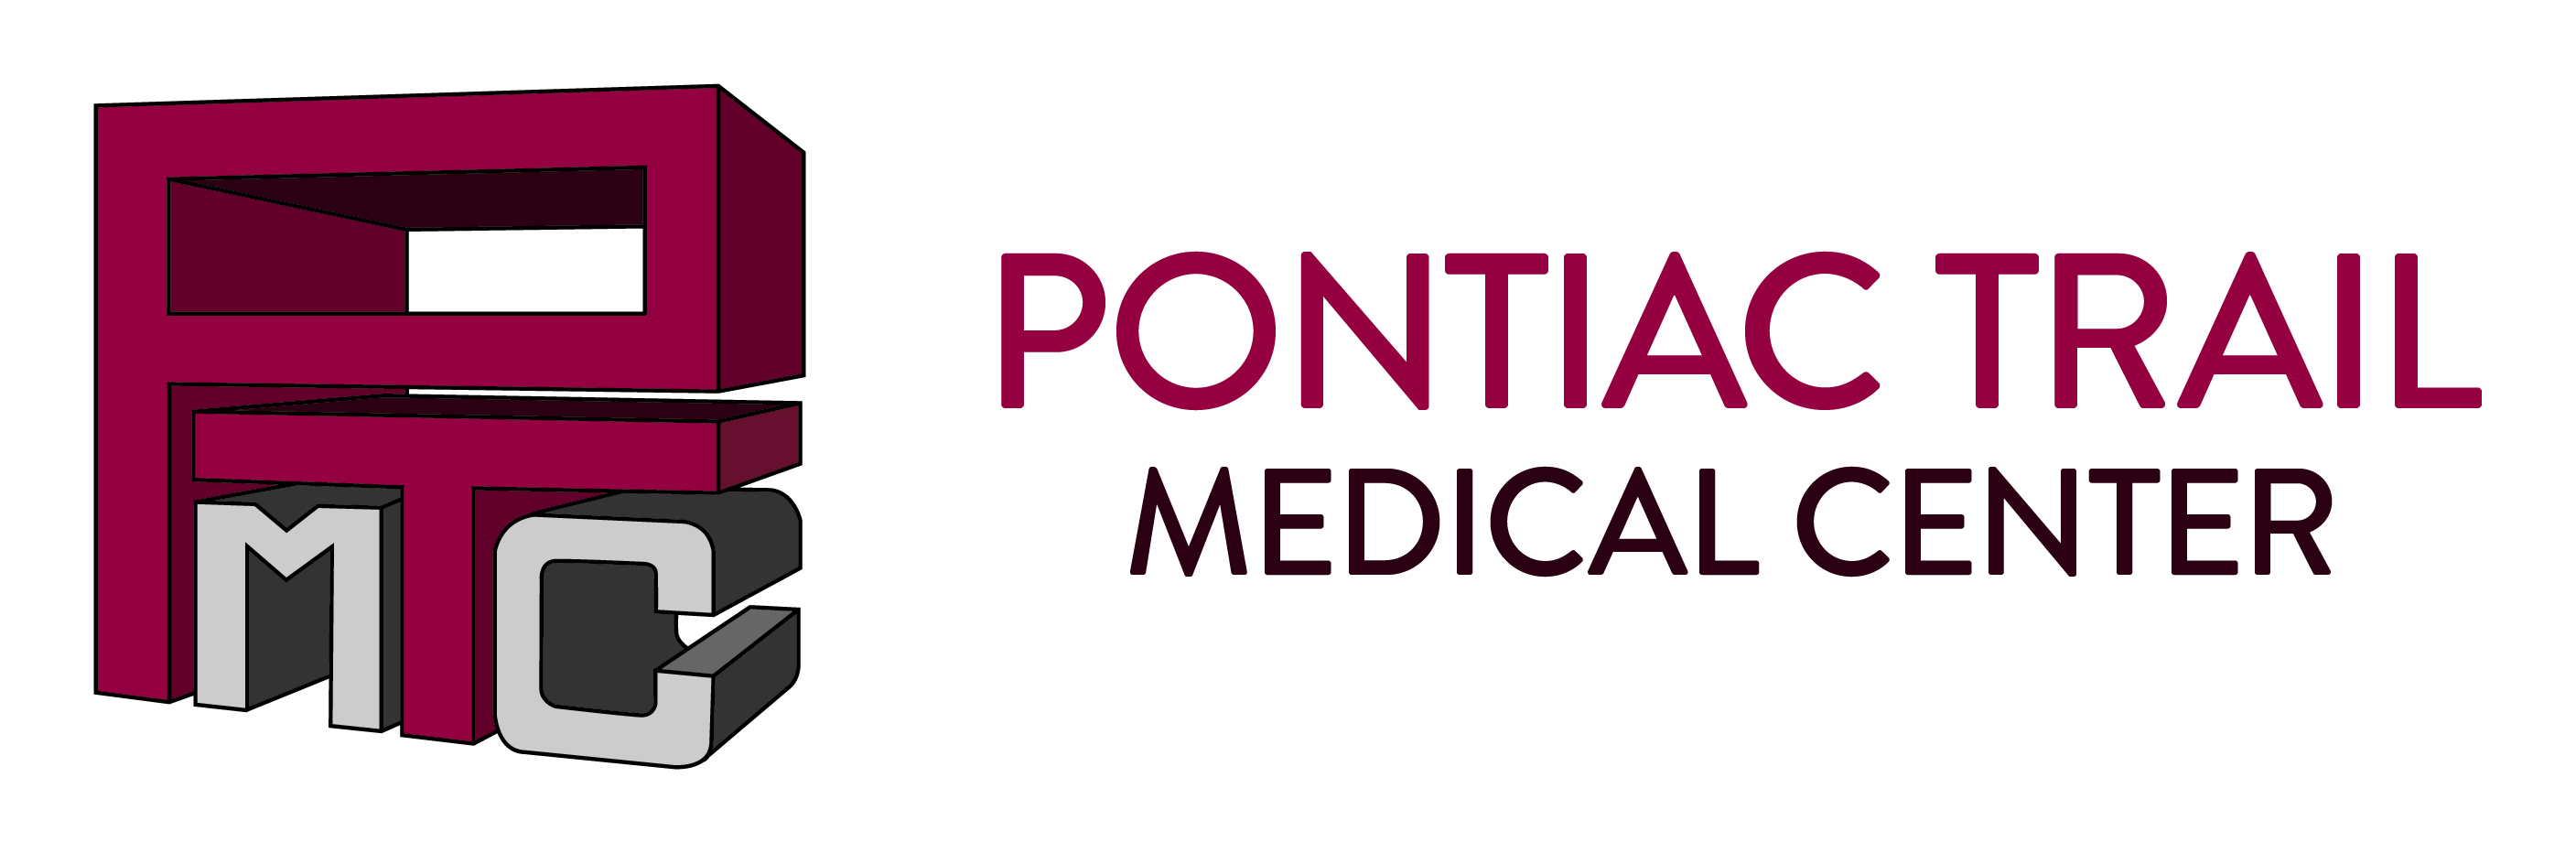 Pontiac Trail Medical Center